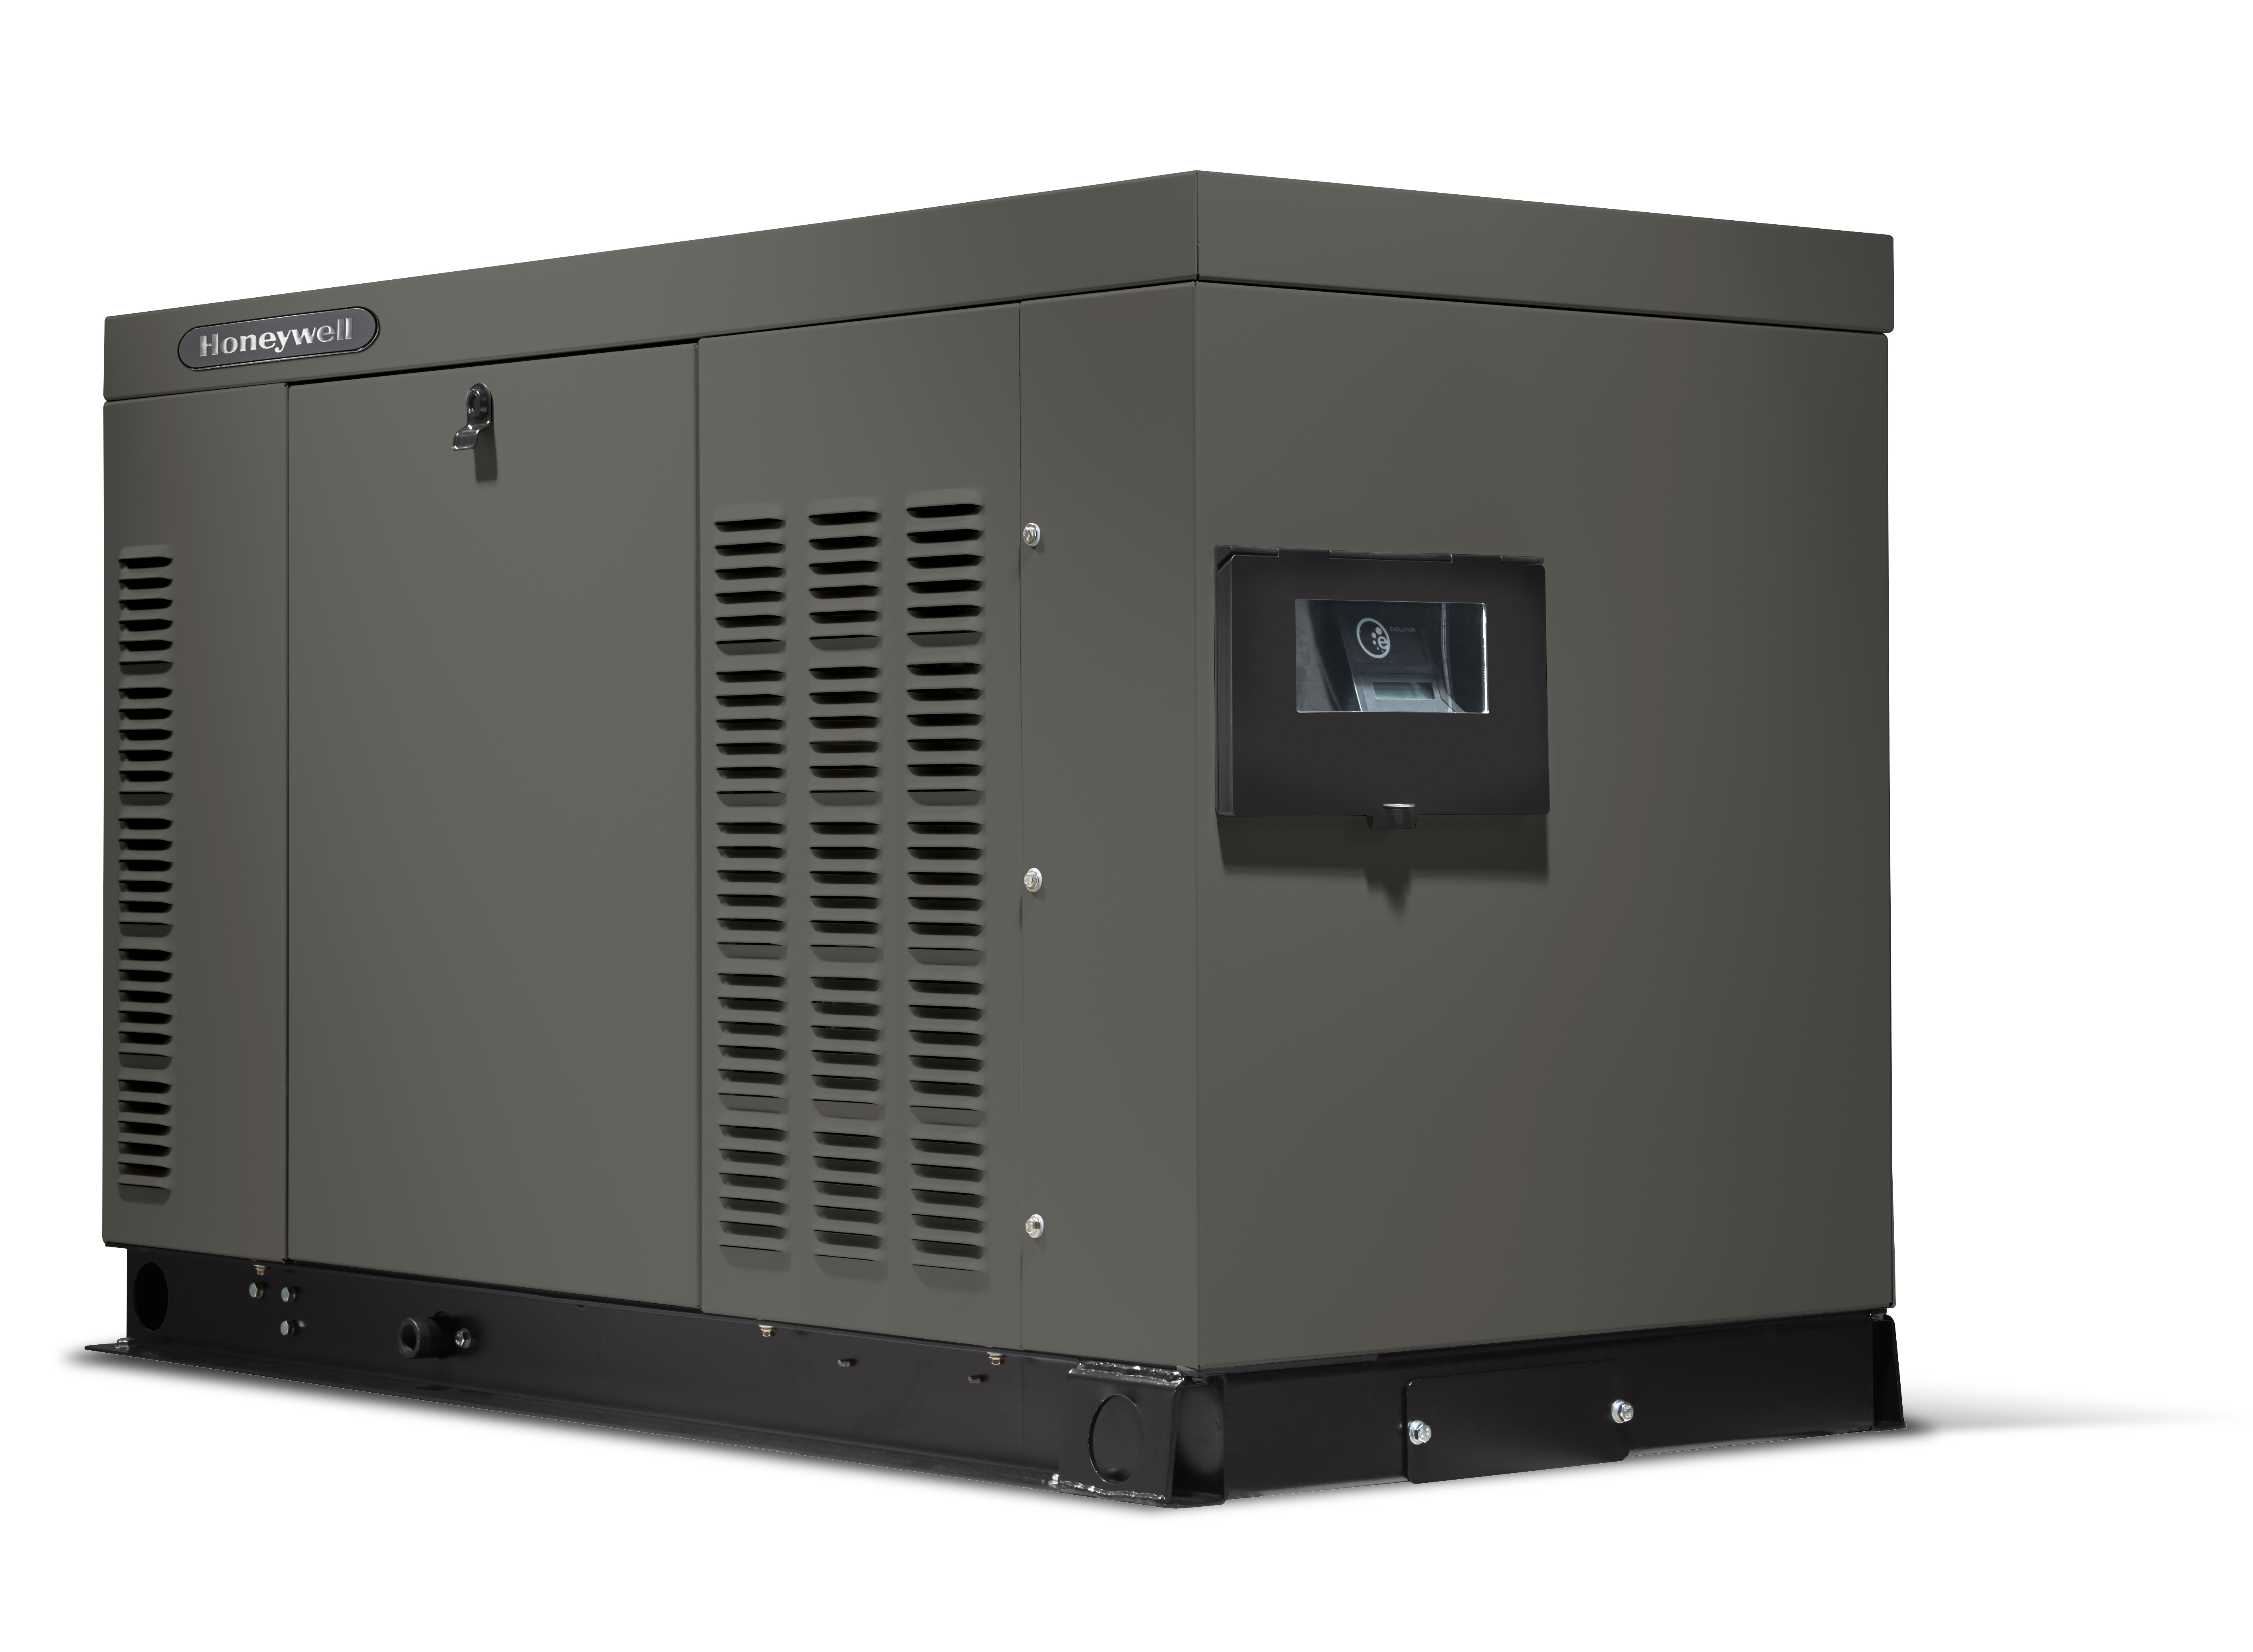 Honeywell 22kw LC Home Backup Generator